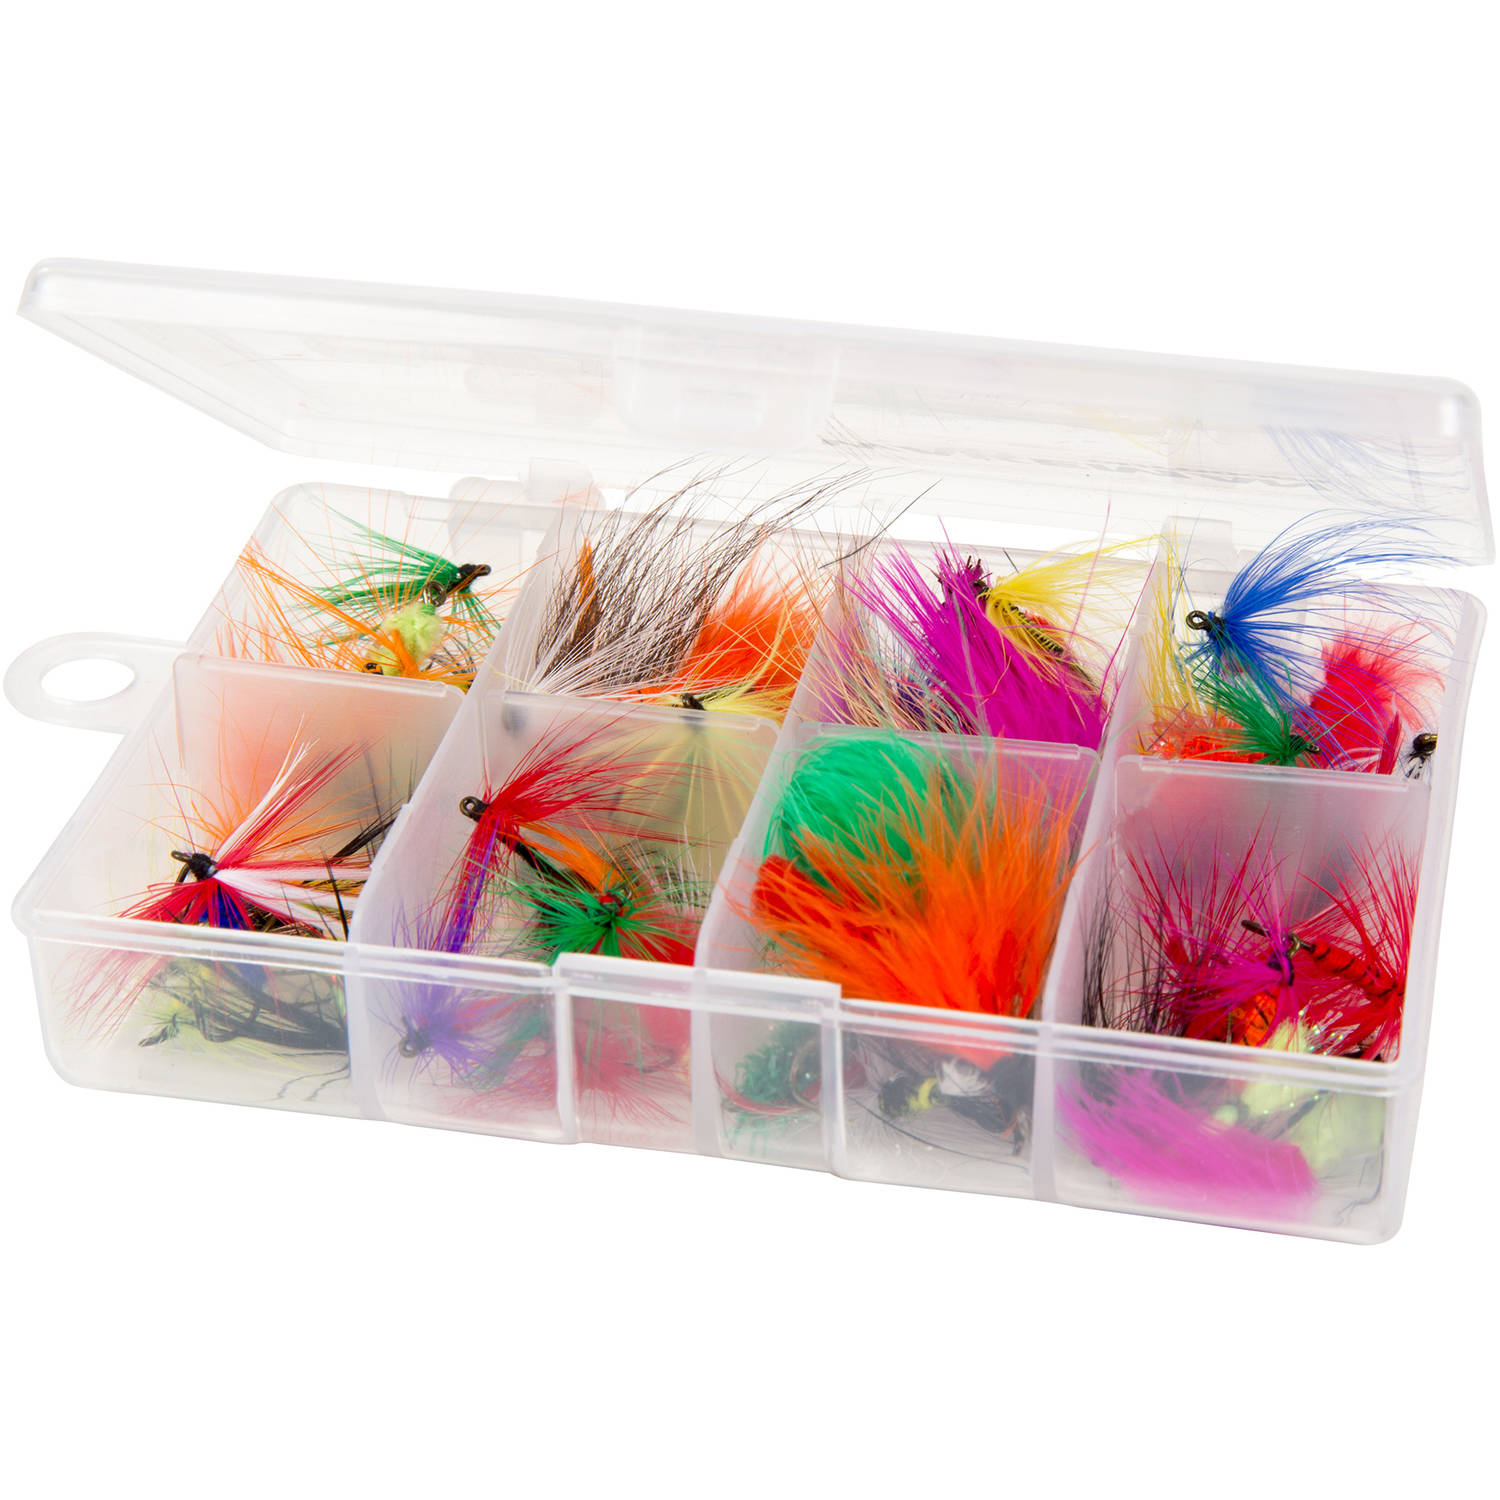 Fly Fishing Lures- 50 Brightly Colored Assorted Dry Insect Flies, Fishing Equipment for Catch and Release in Organizer Tool Box by Wakeman... by Trademark Global LLC